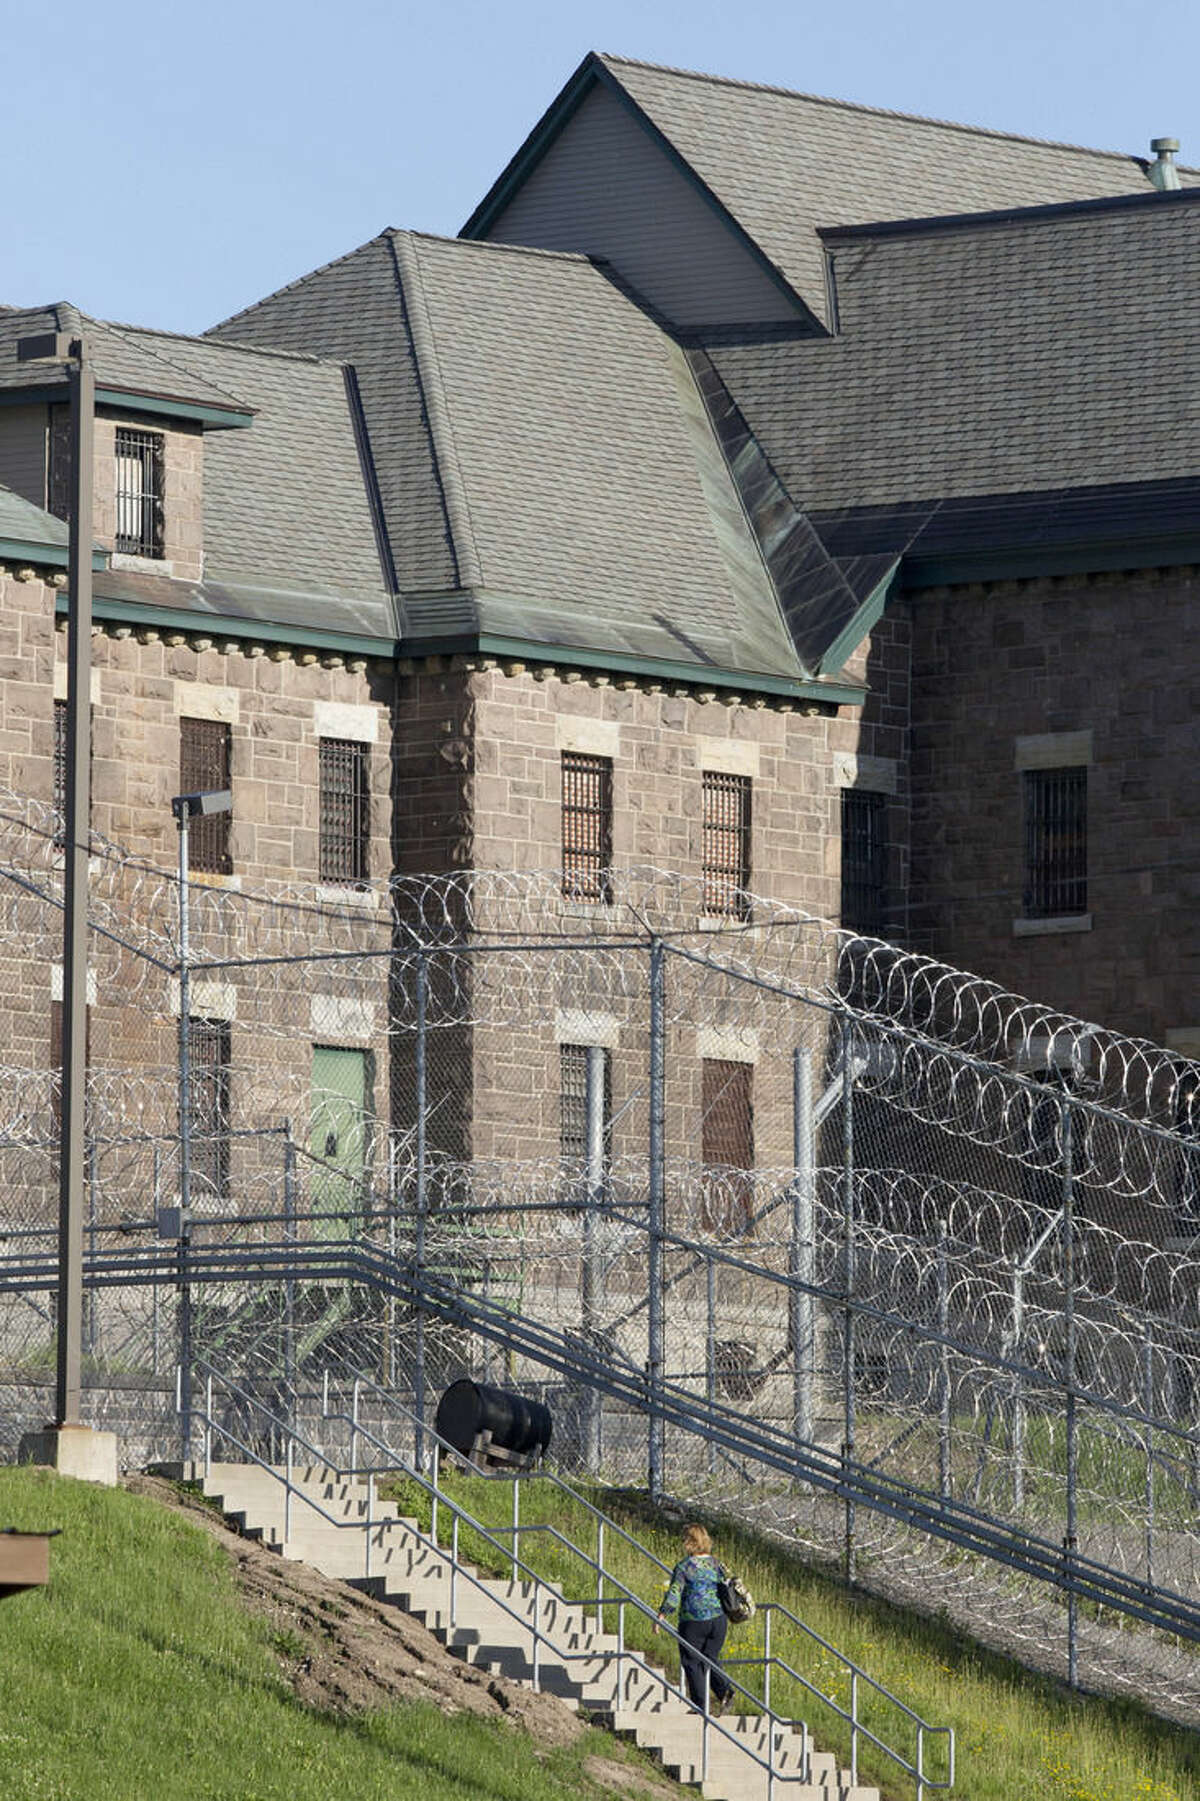 An employee arrives at the Clinton Correctional Facility, Wednesday, June 17, 2015 in Dannemora, N.Y. Search teams are back in the woods of northern New York looking for two convicted murderers who broke out of the maximum-security prison a week and a half ago. More than 800 law enforcement officers are in the 12th day of searching for David Sweat and Richard Matt. (AP Photo/Mark Lennihan)